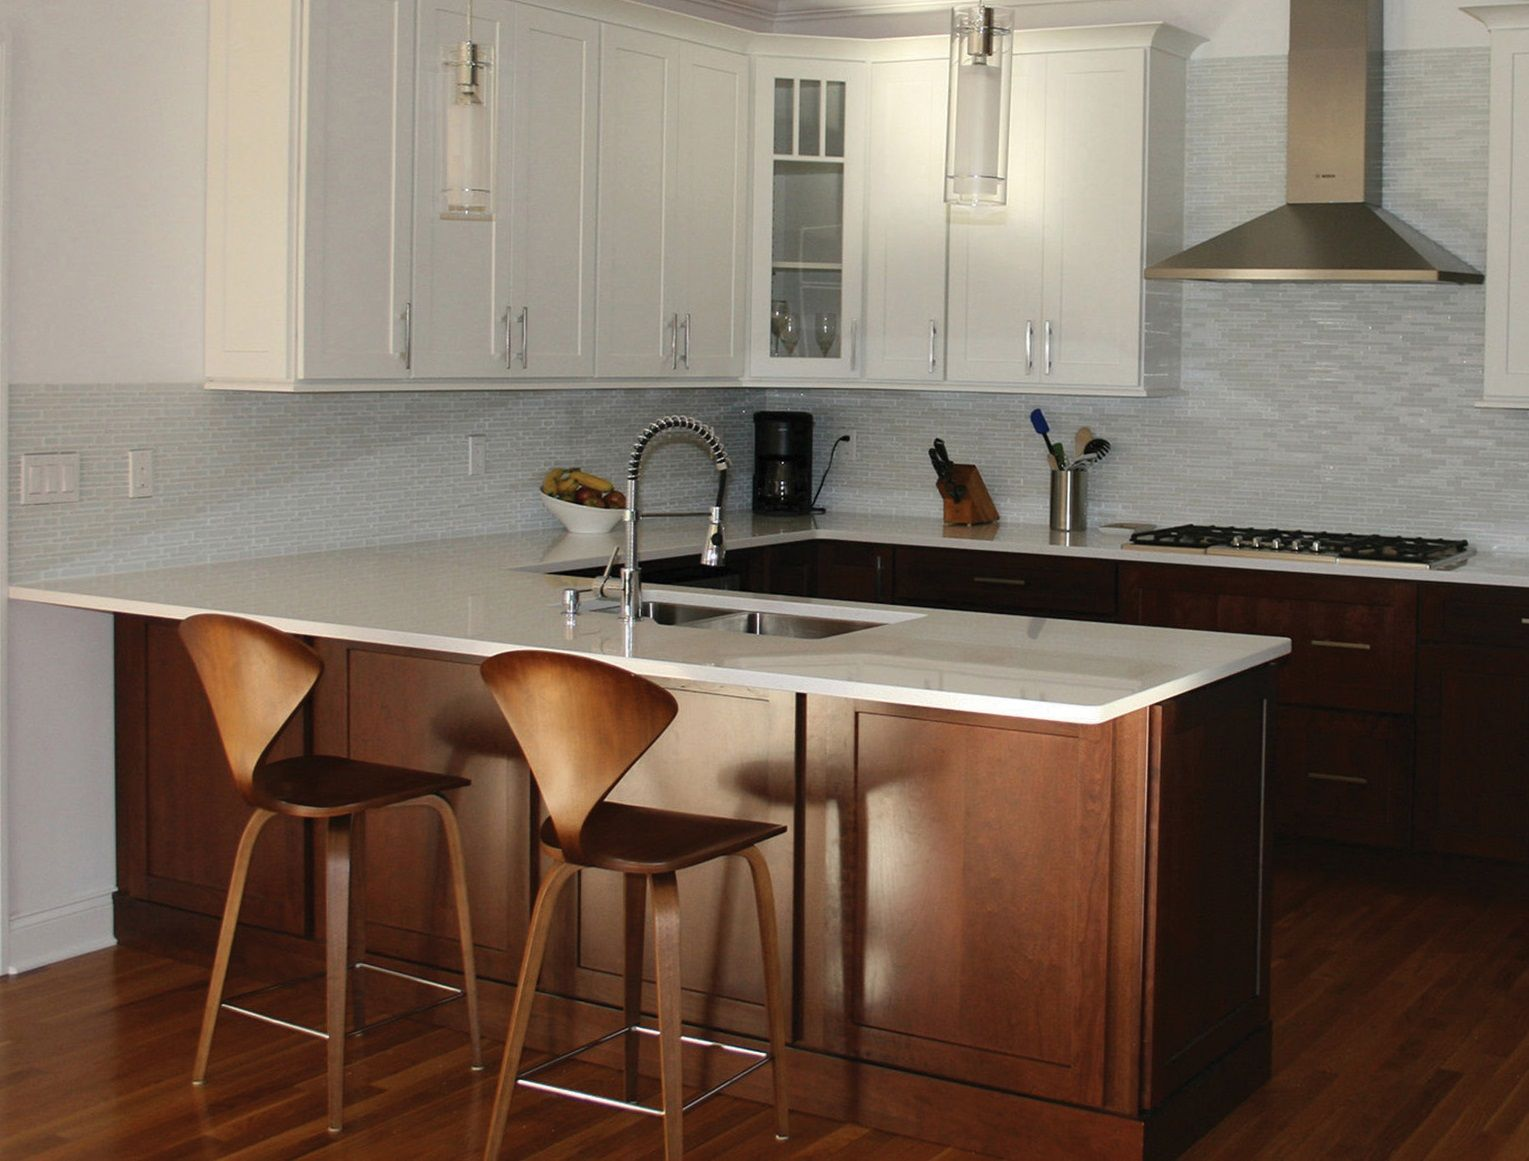 Transforming Your Design With a Kitchen Peninsula (With